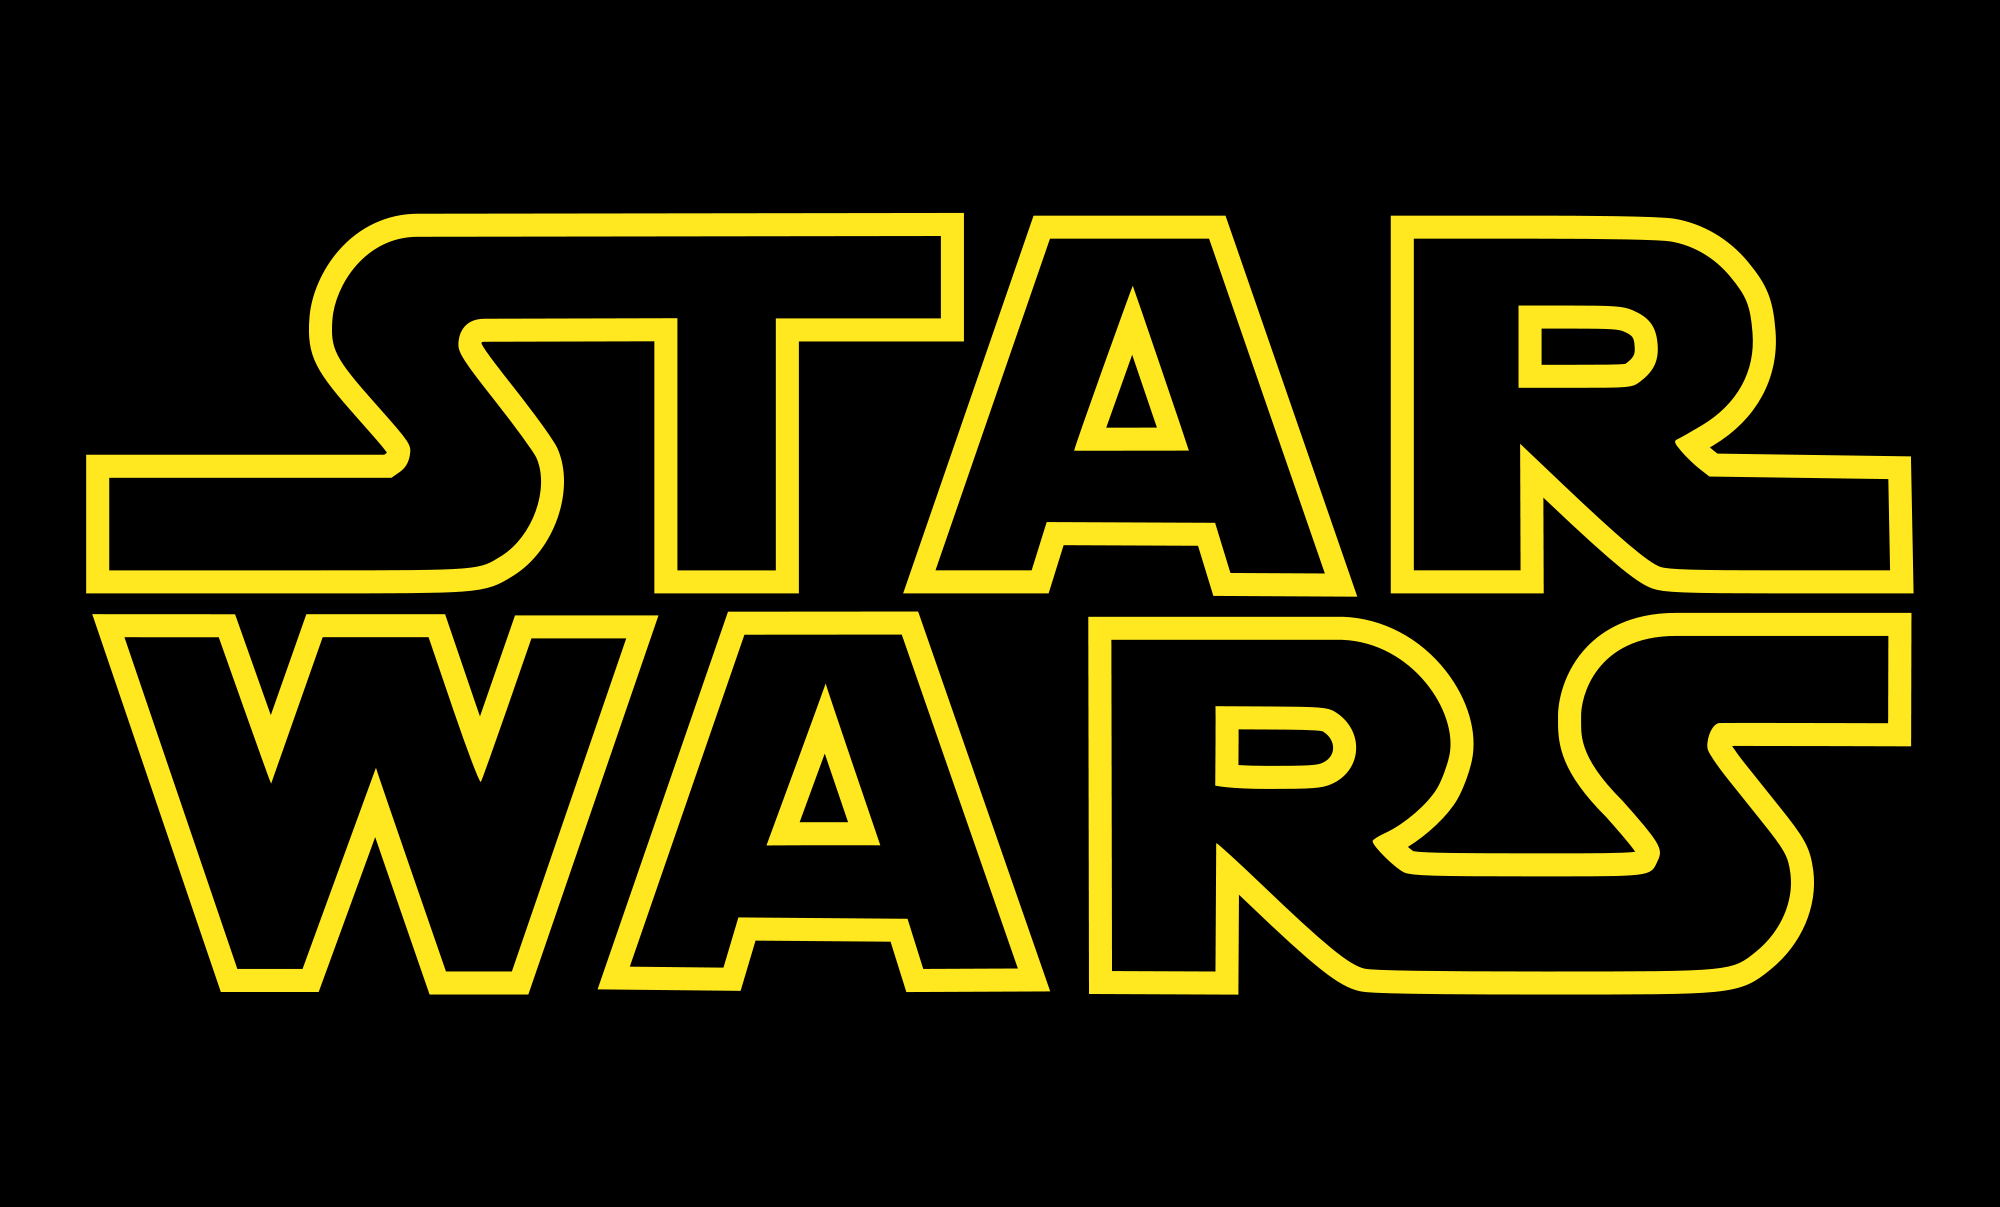 Star Wars Trailer #2 Released Today